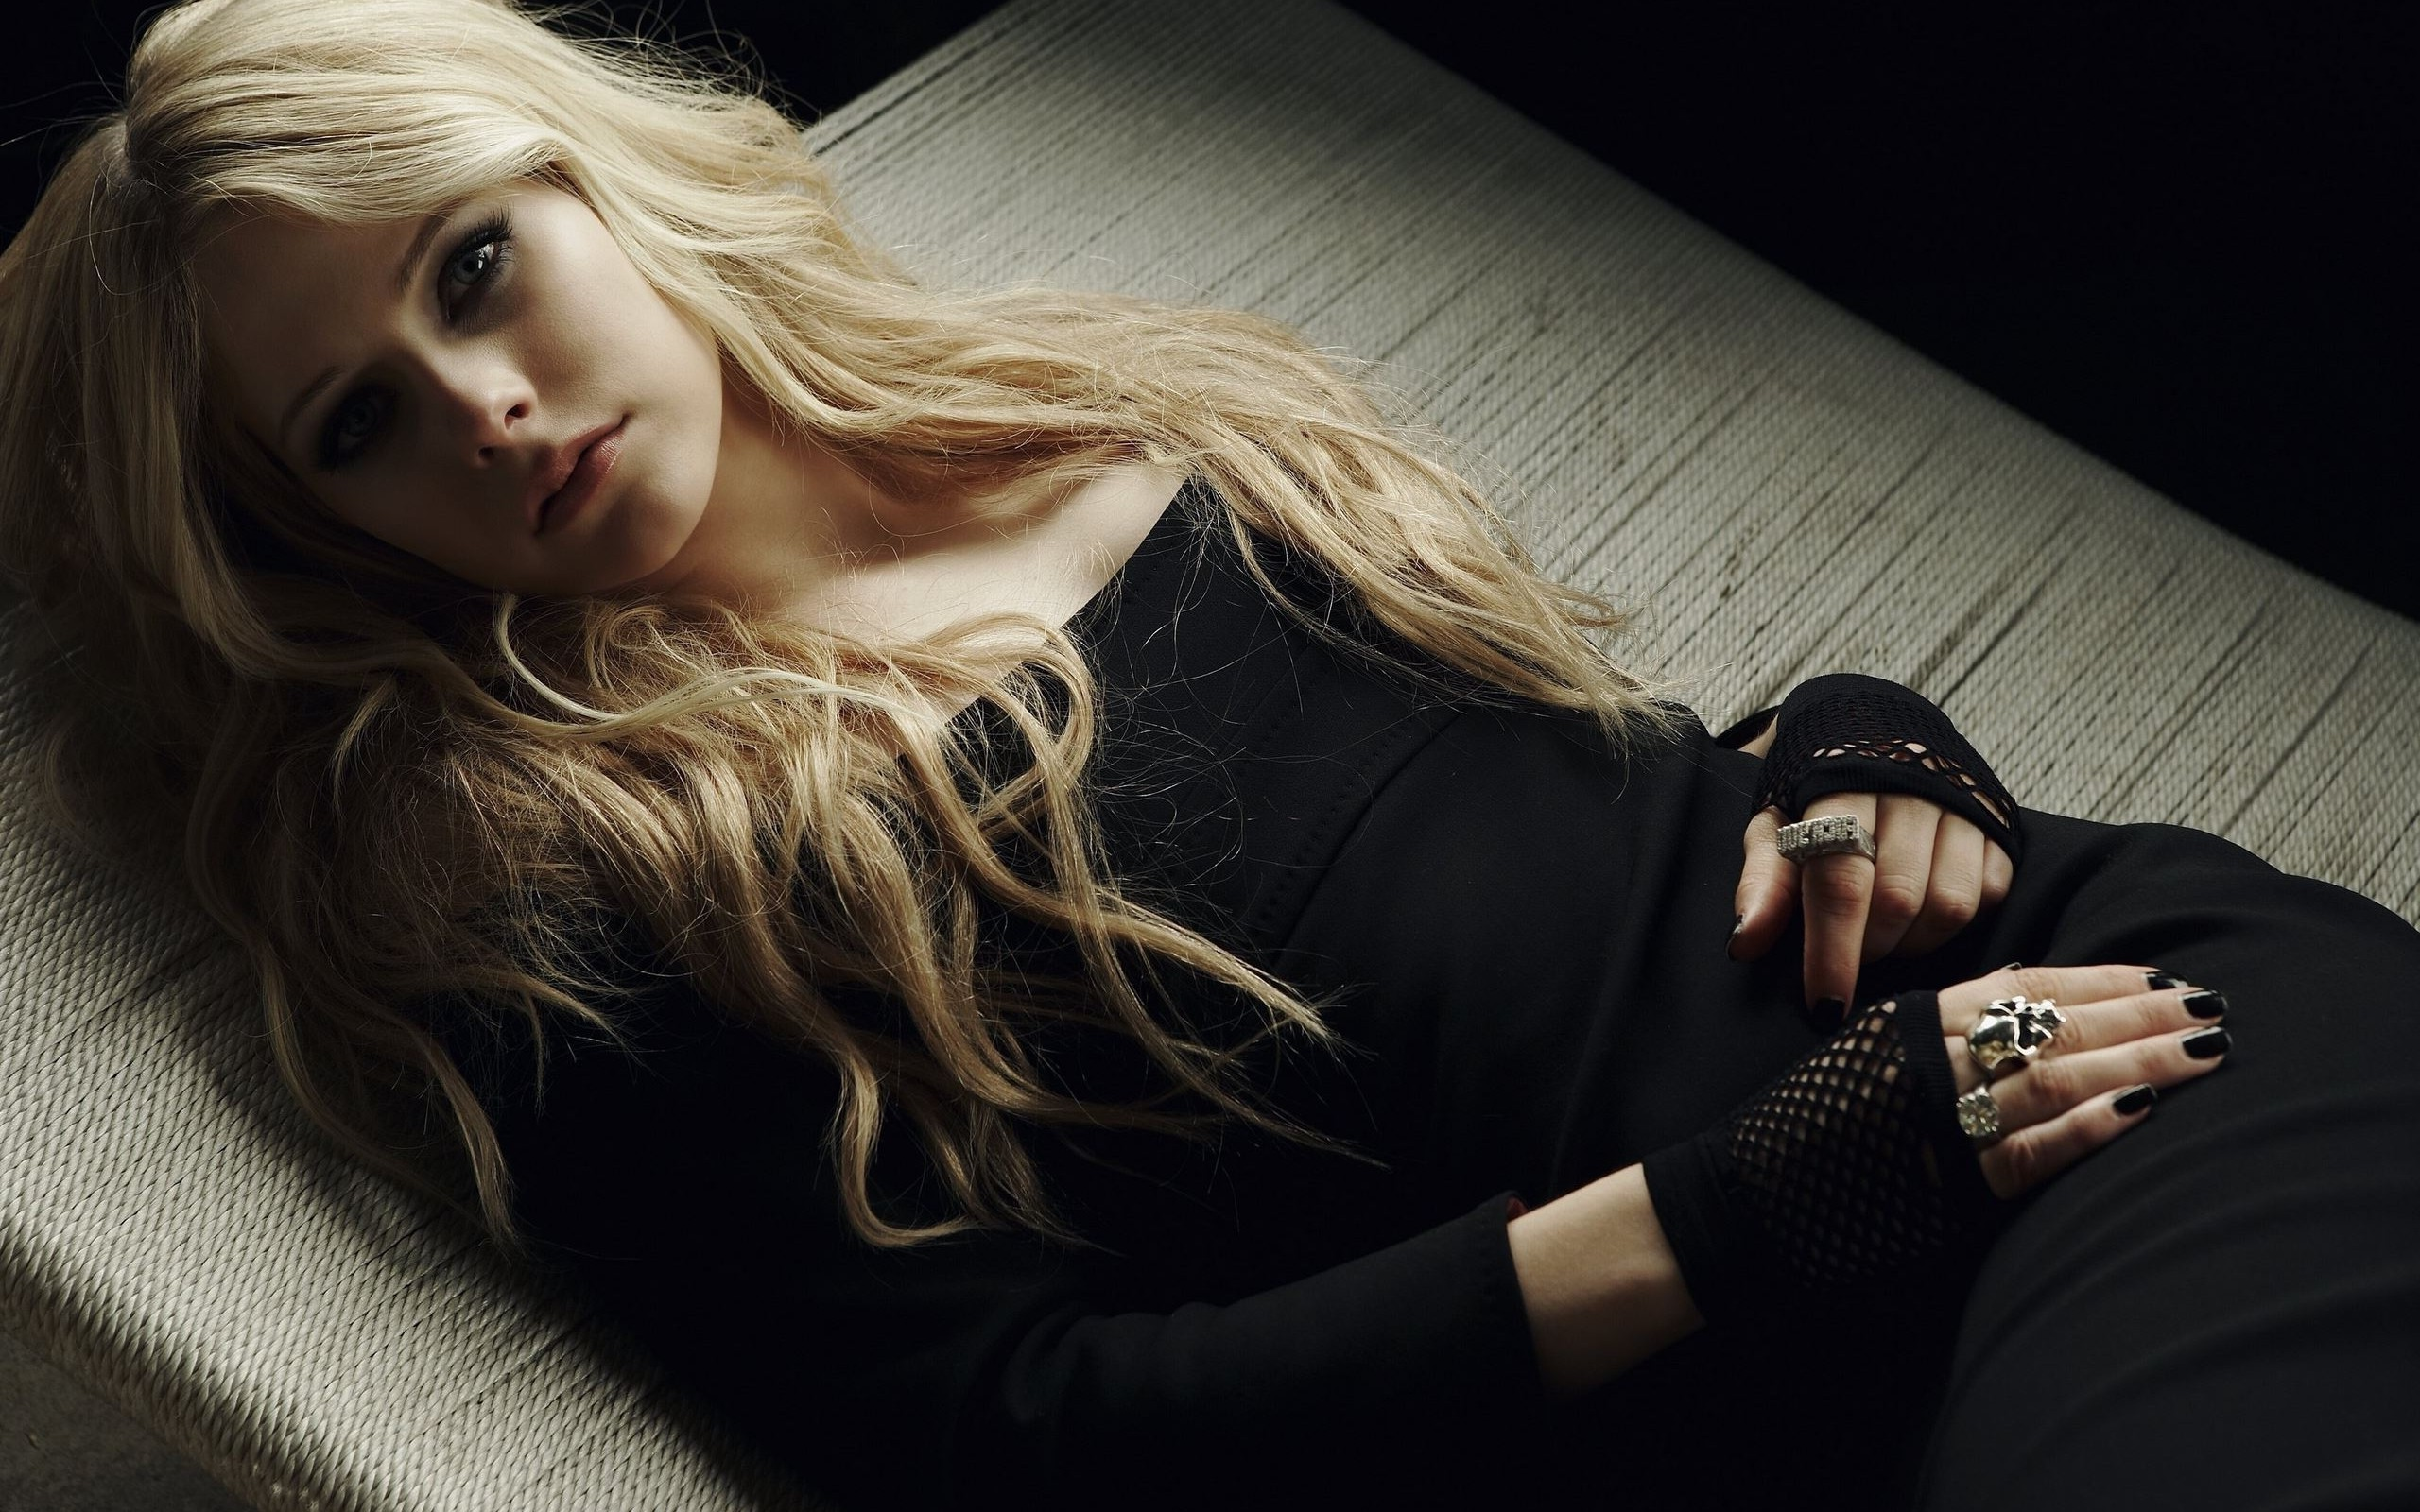 Emo Girl Hd Wallpaper Download Avril Lavigne Women Singer Blonde Gothic Black Dress